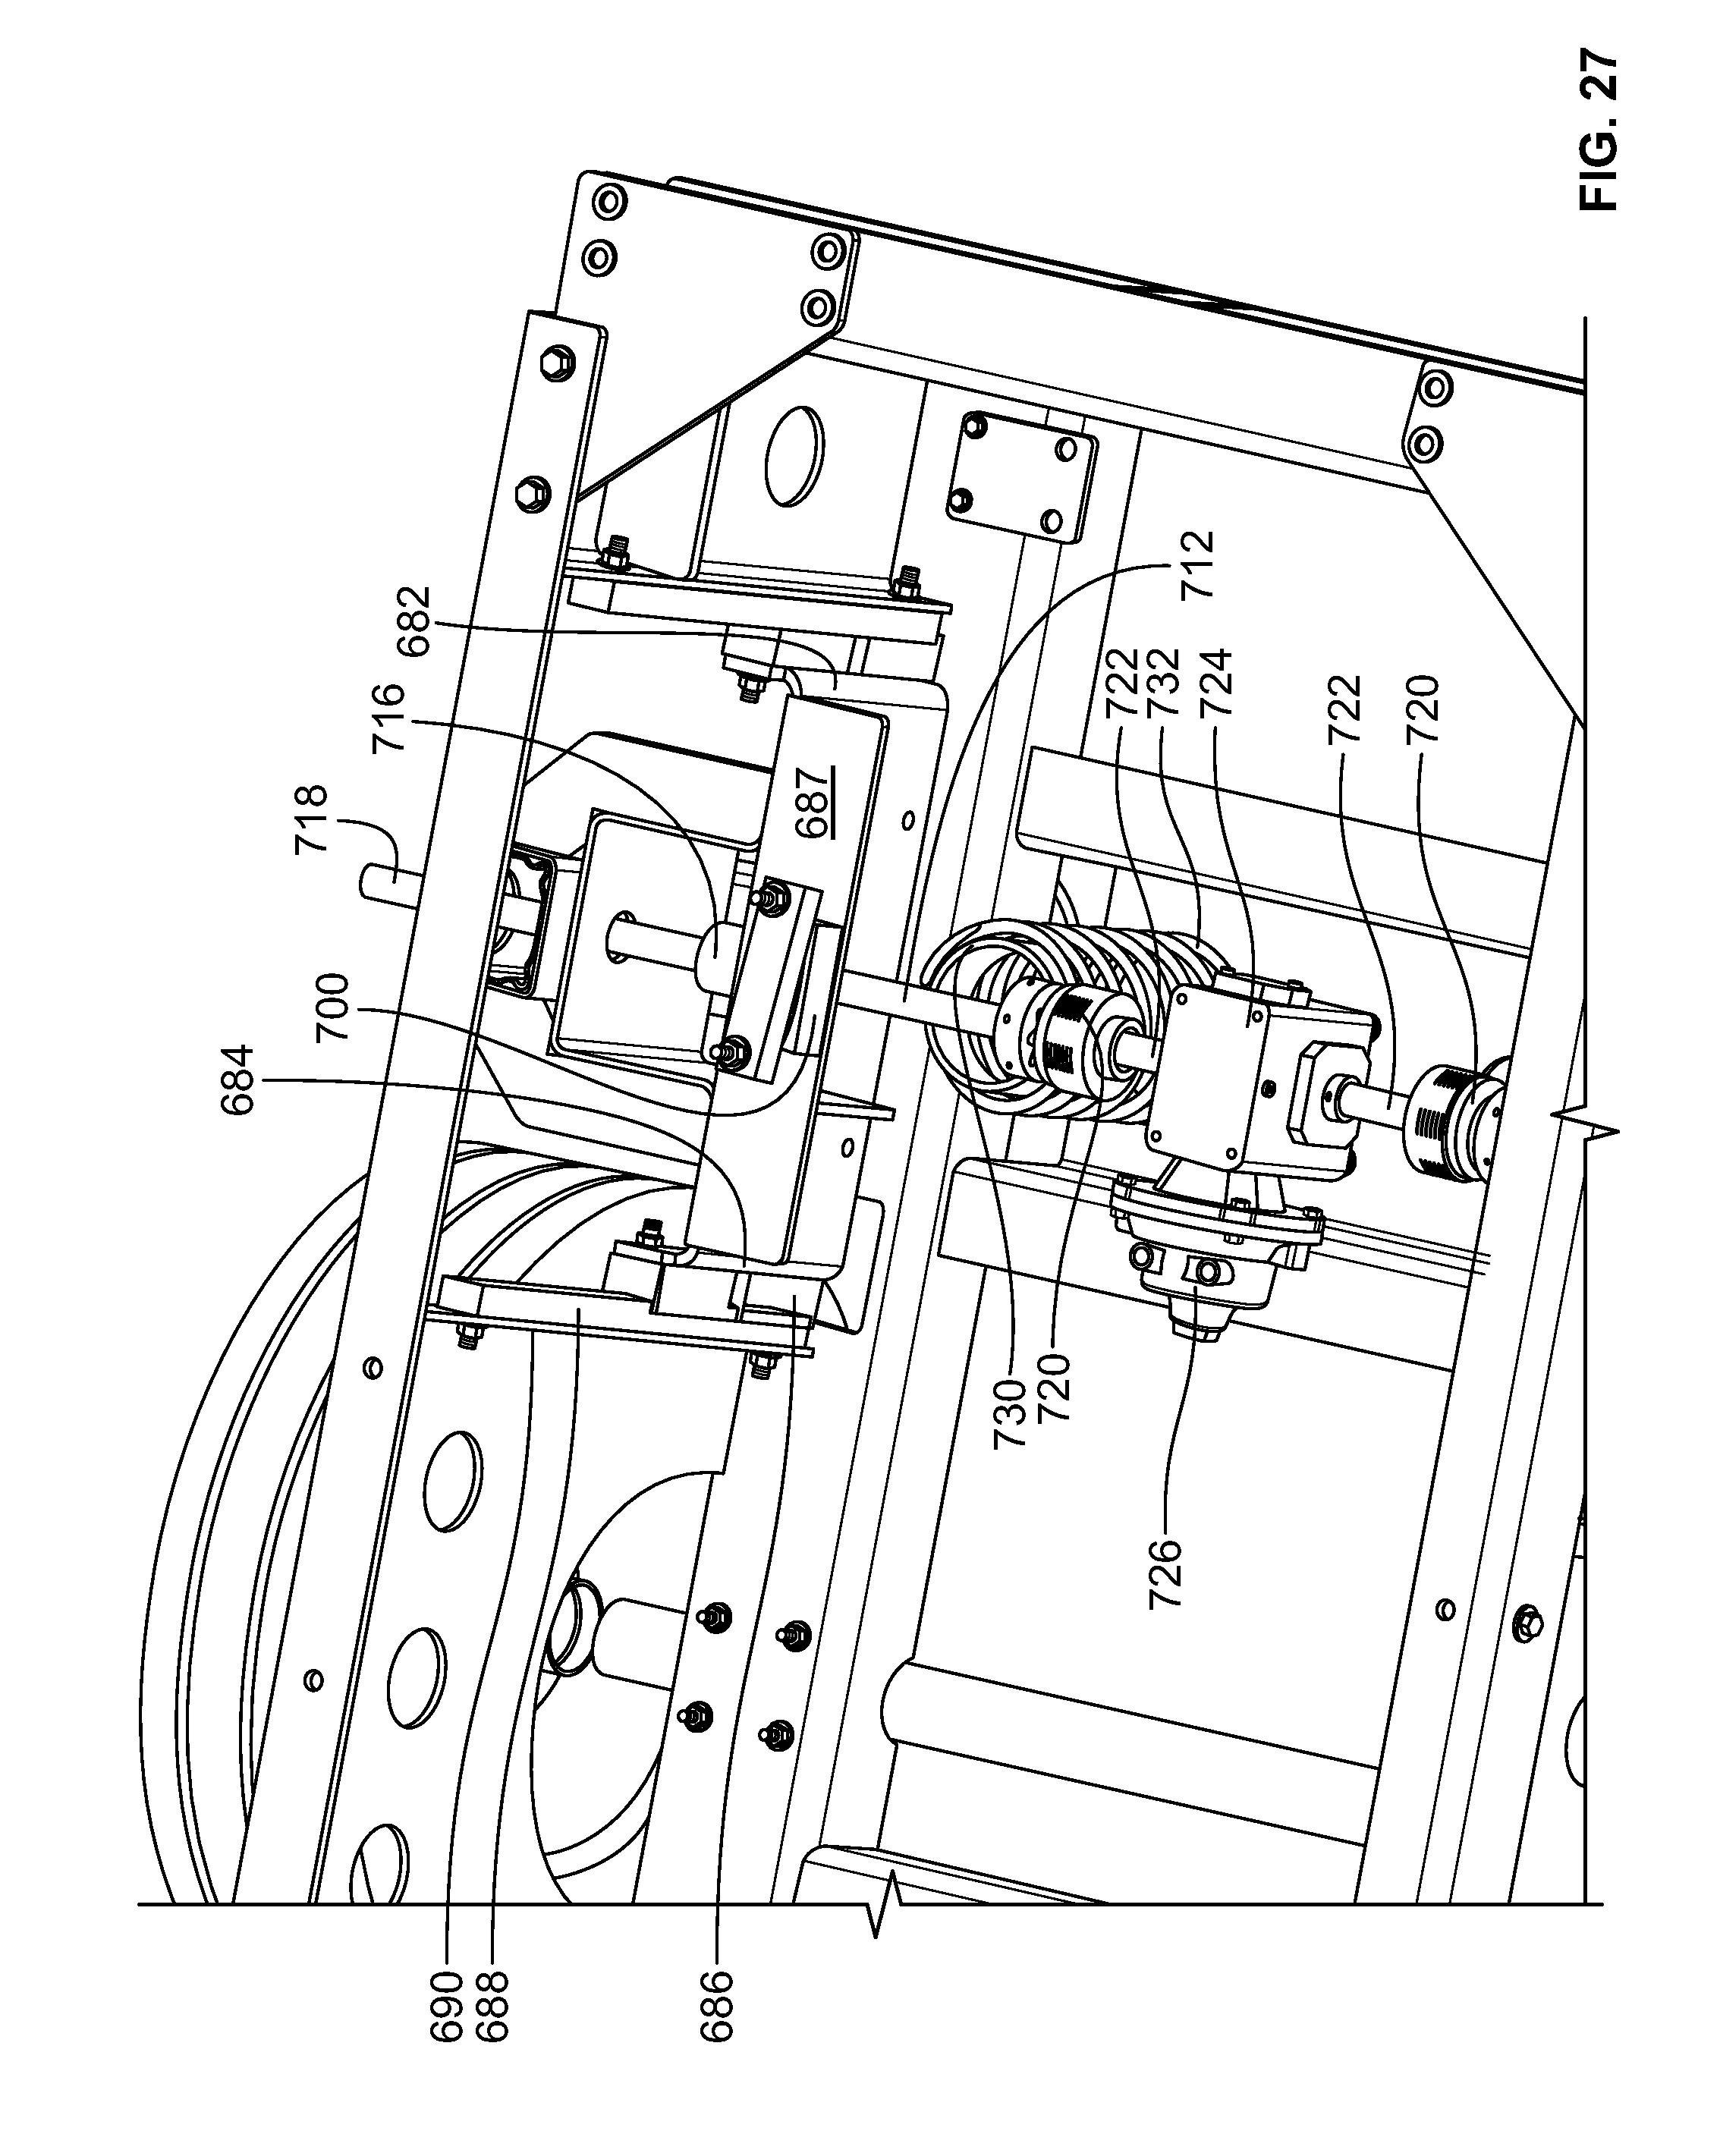 Wiring Diagram For A Ford Tractor